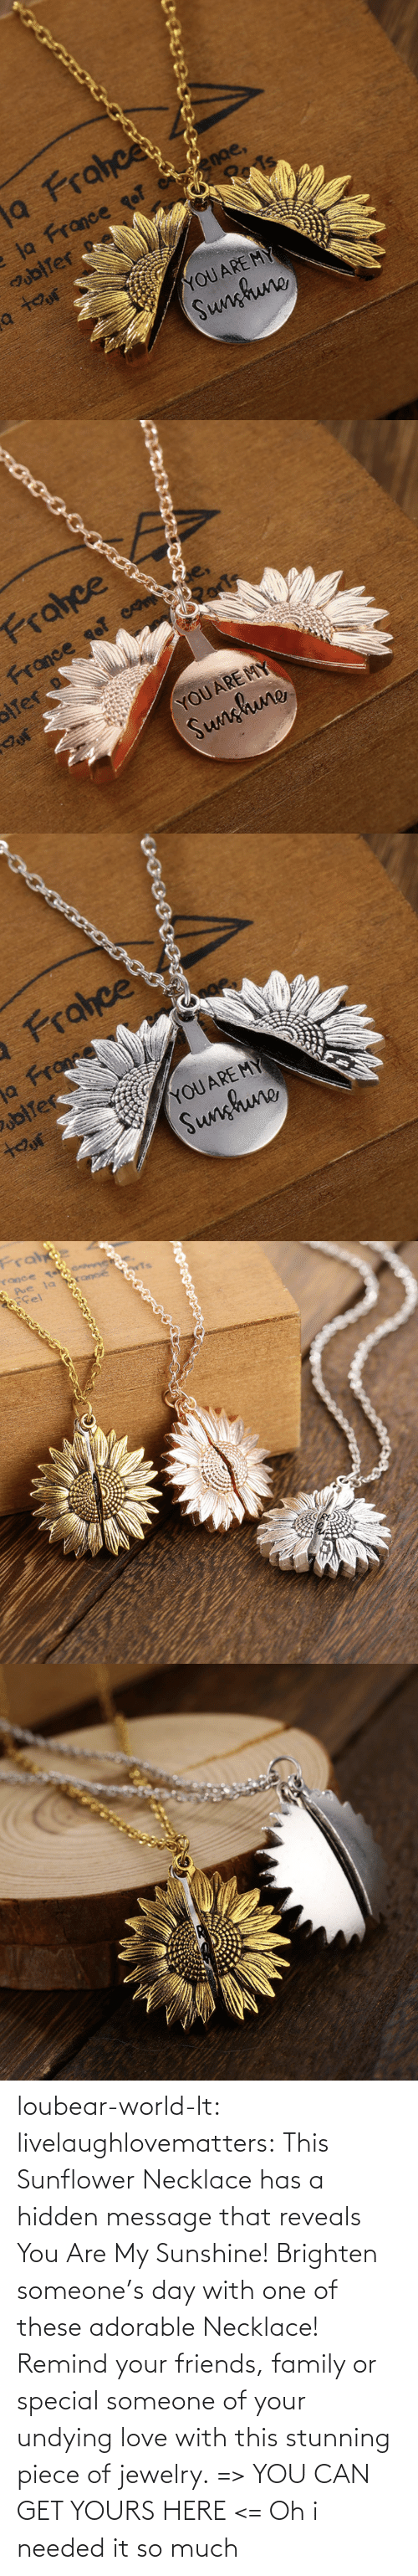 Jewelry: loubear-world-lt: livelaughlovematters:   This Sunflower Necklace has a hidden message that reveals You Are My Sunshine! Brighten someone's day with one of these adorable Necklace! Remind your friends, family or special someone of your undying love with this stunning piece of jewelry. => YOU CAN GET YOURS HERE <=    Oh i needed it so much